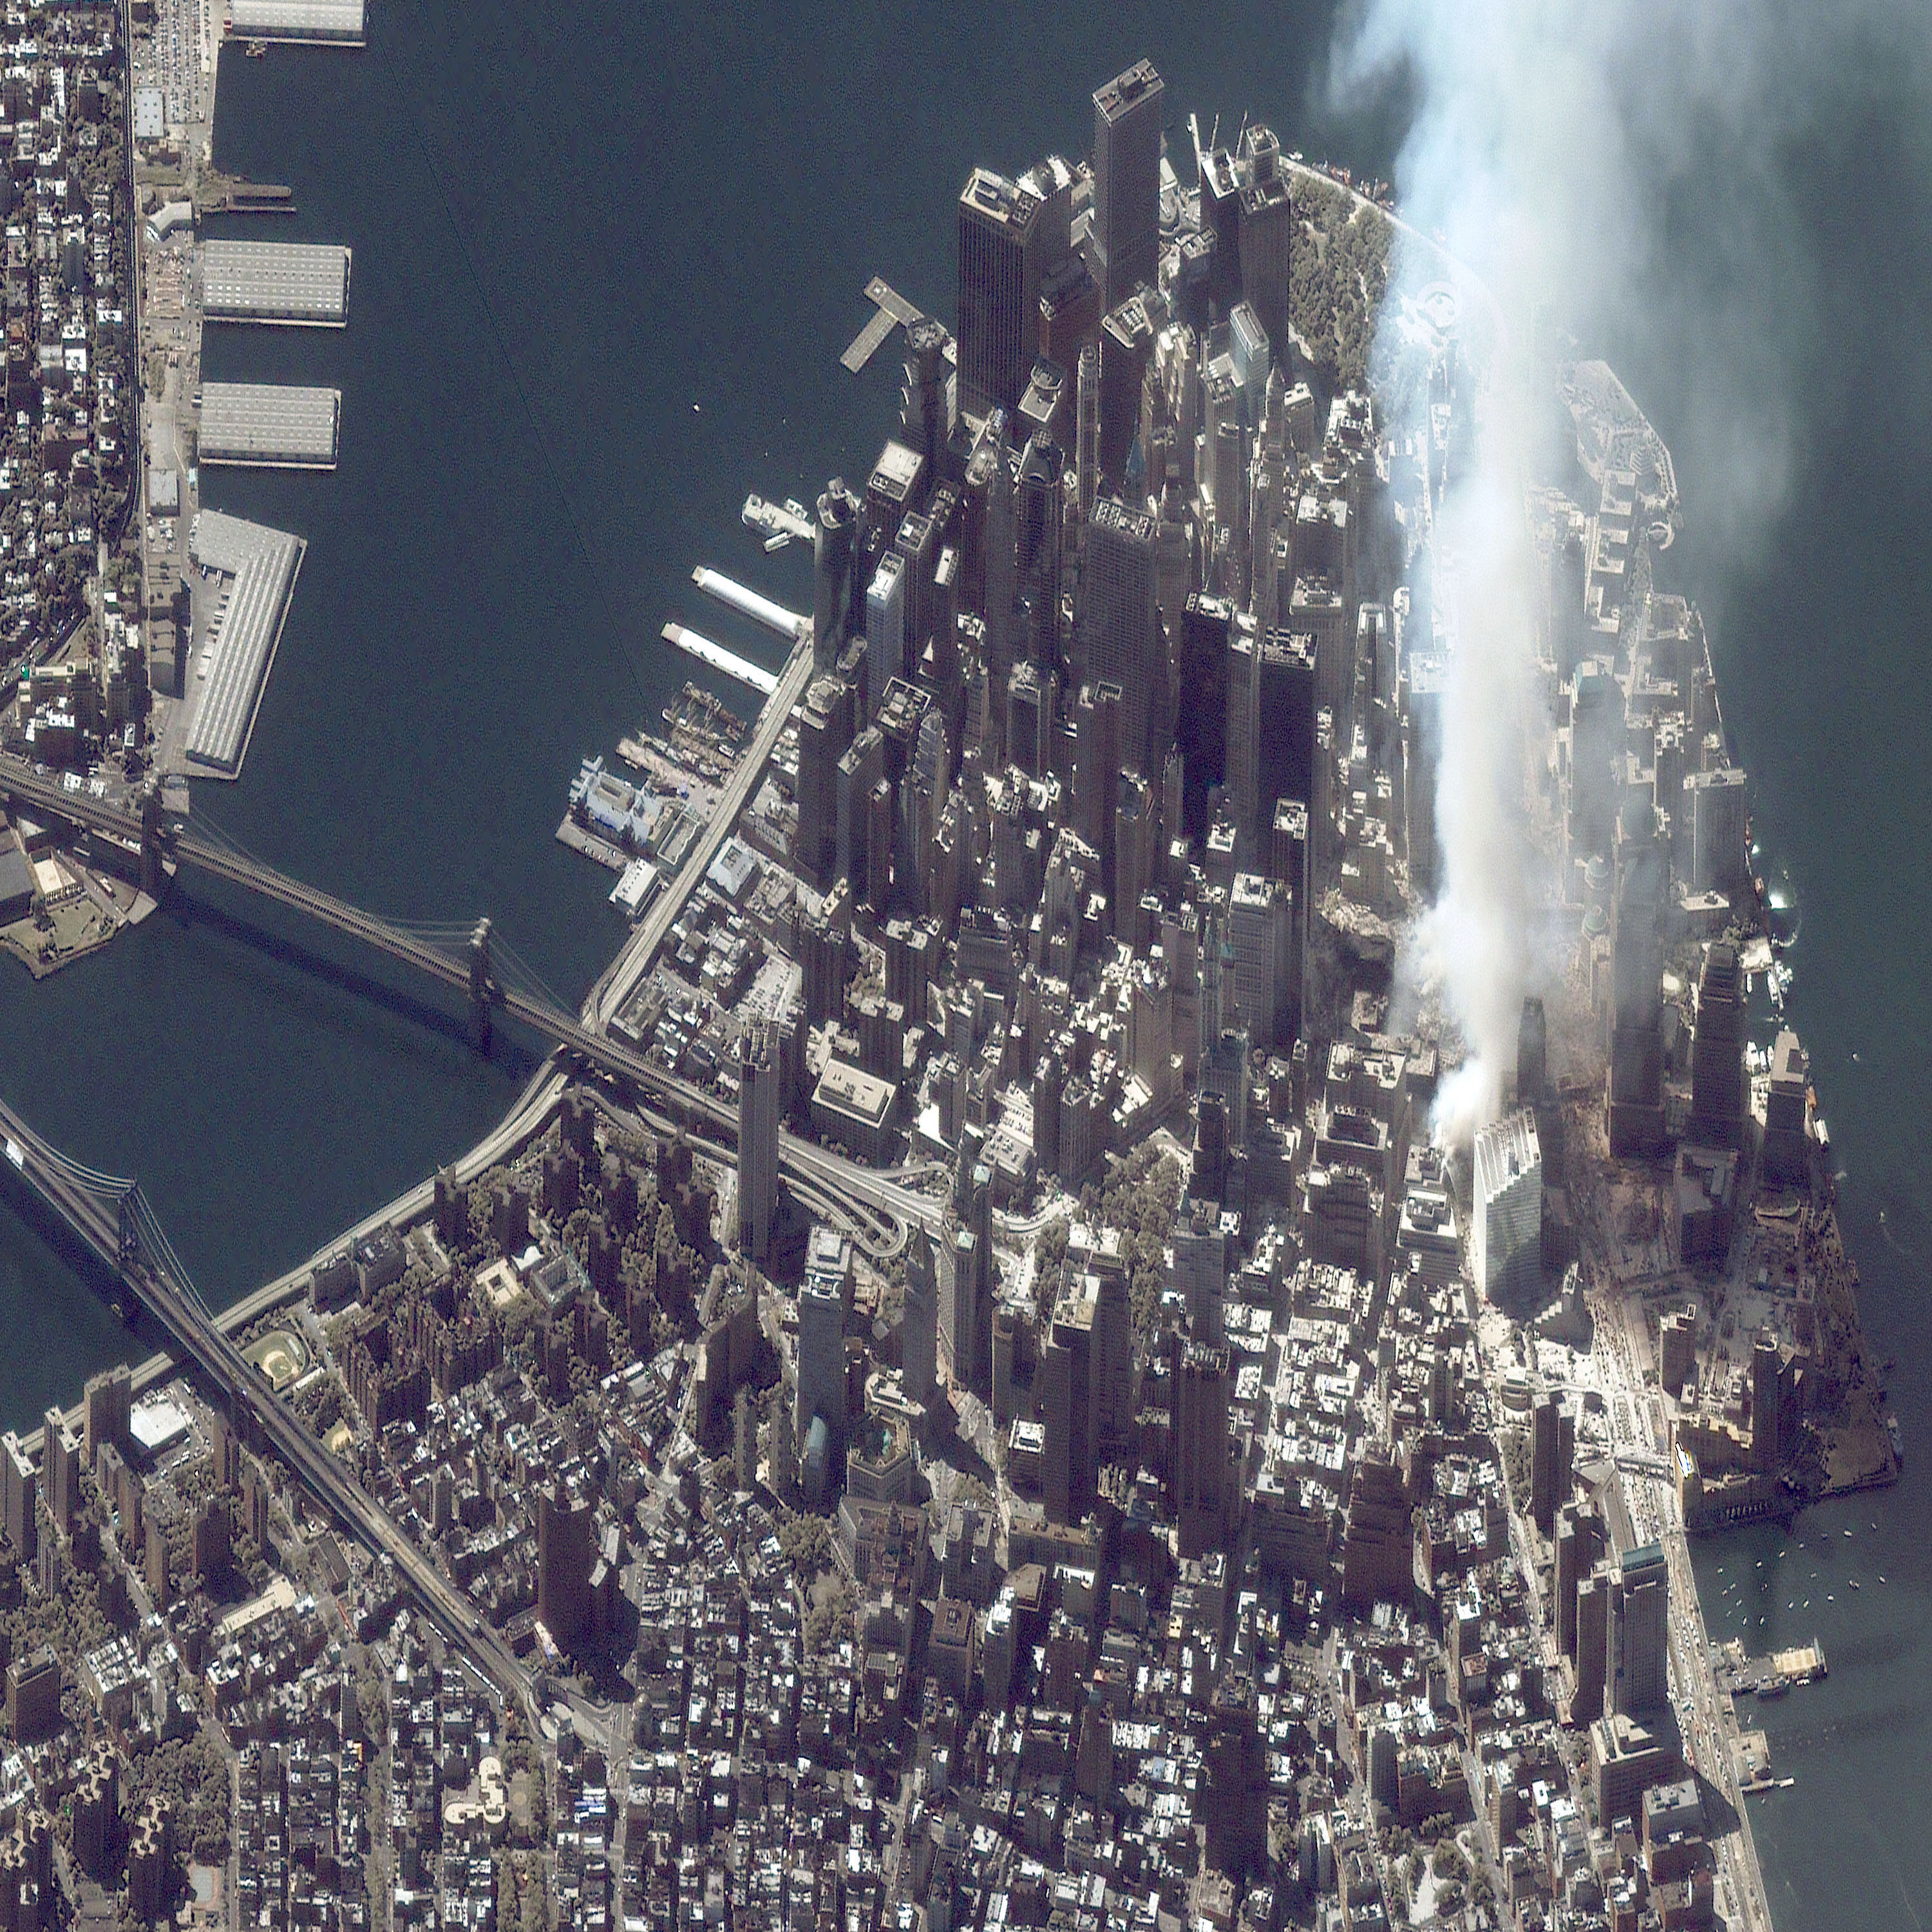 A satellite image of lower Manhattan shows smoke and ash rising from the site of the World Trade Center the day after the September 11 attacks.